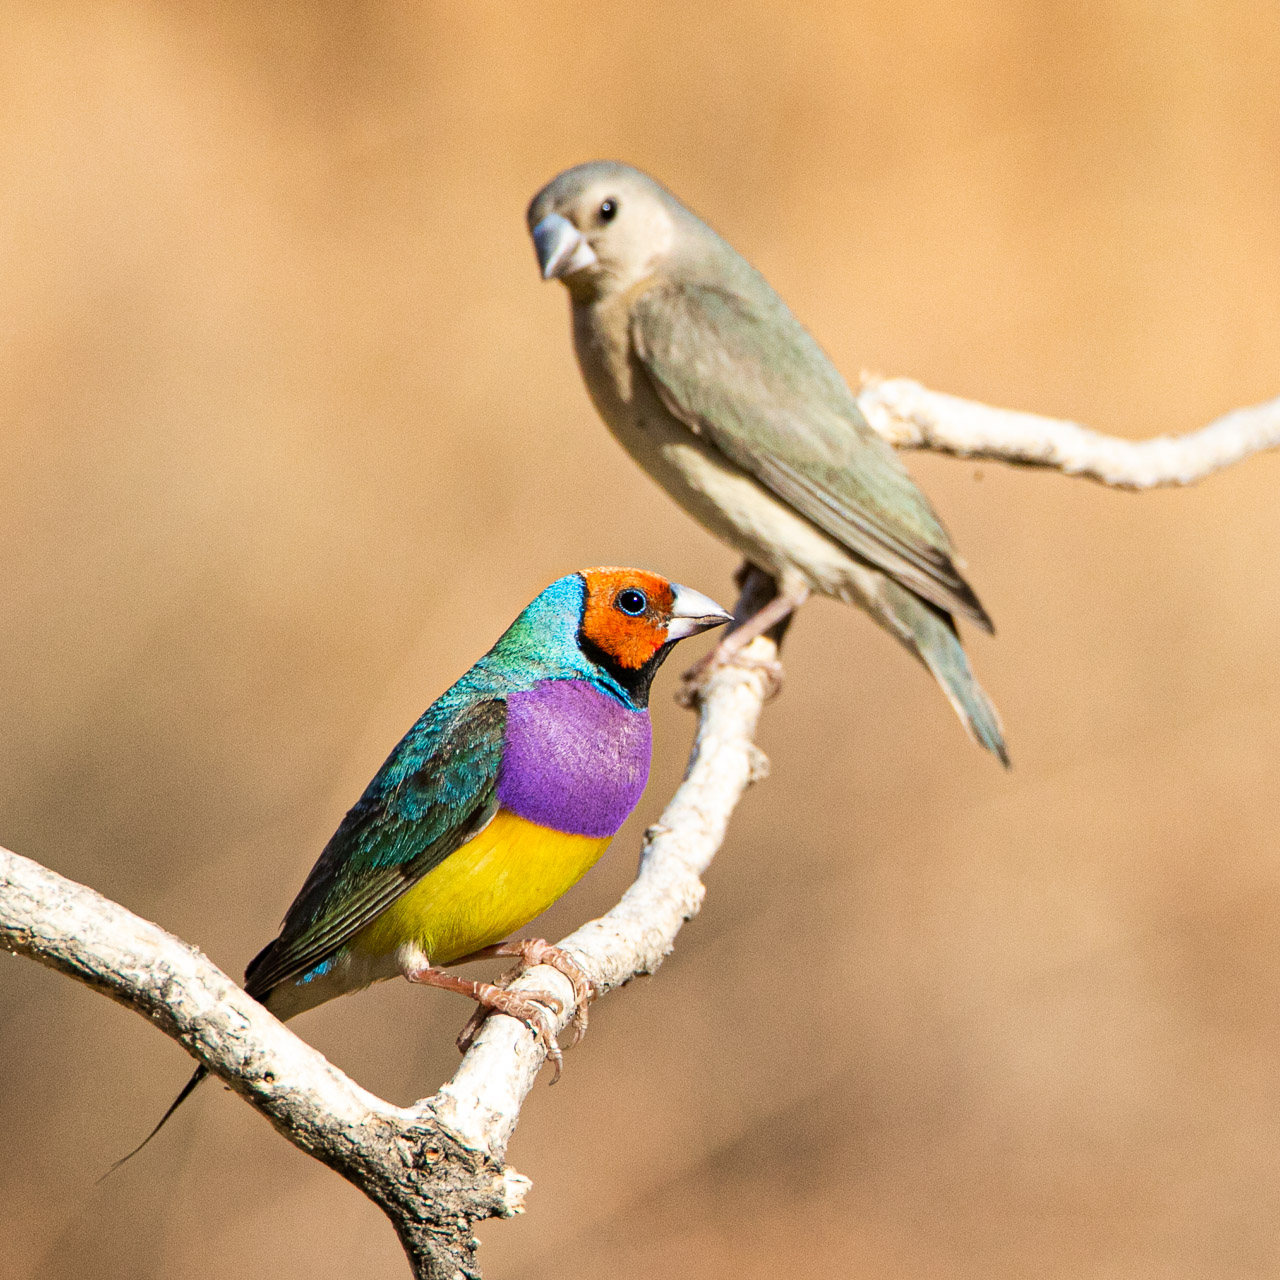 Adult and juvenile gouldian finches in Wyndham WA